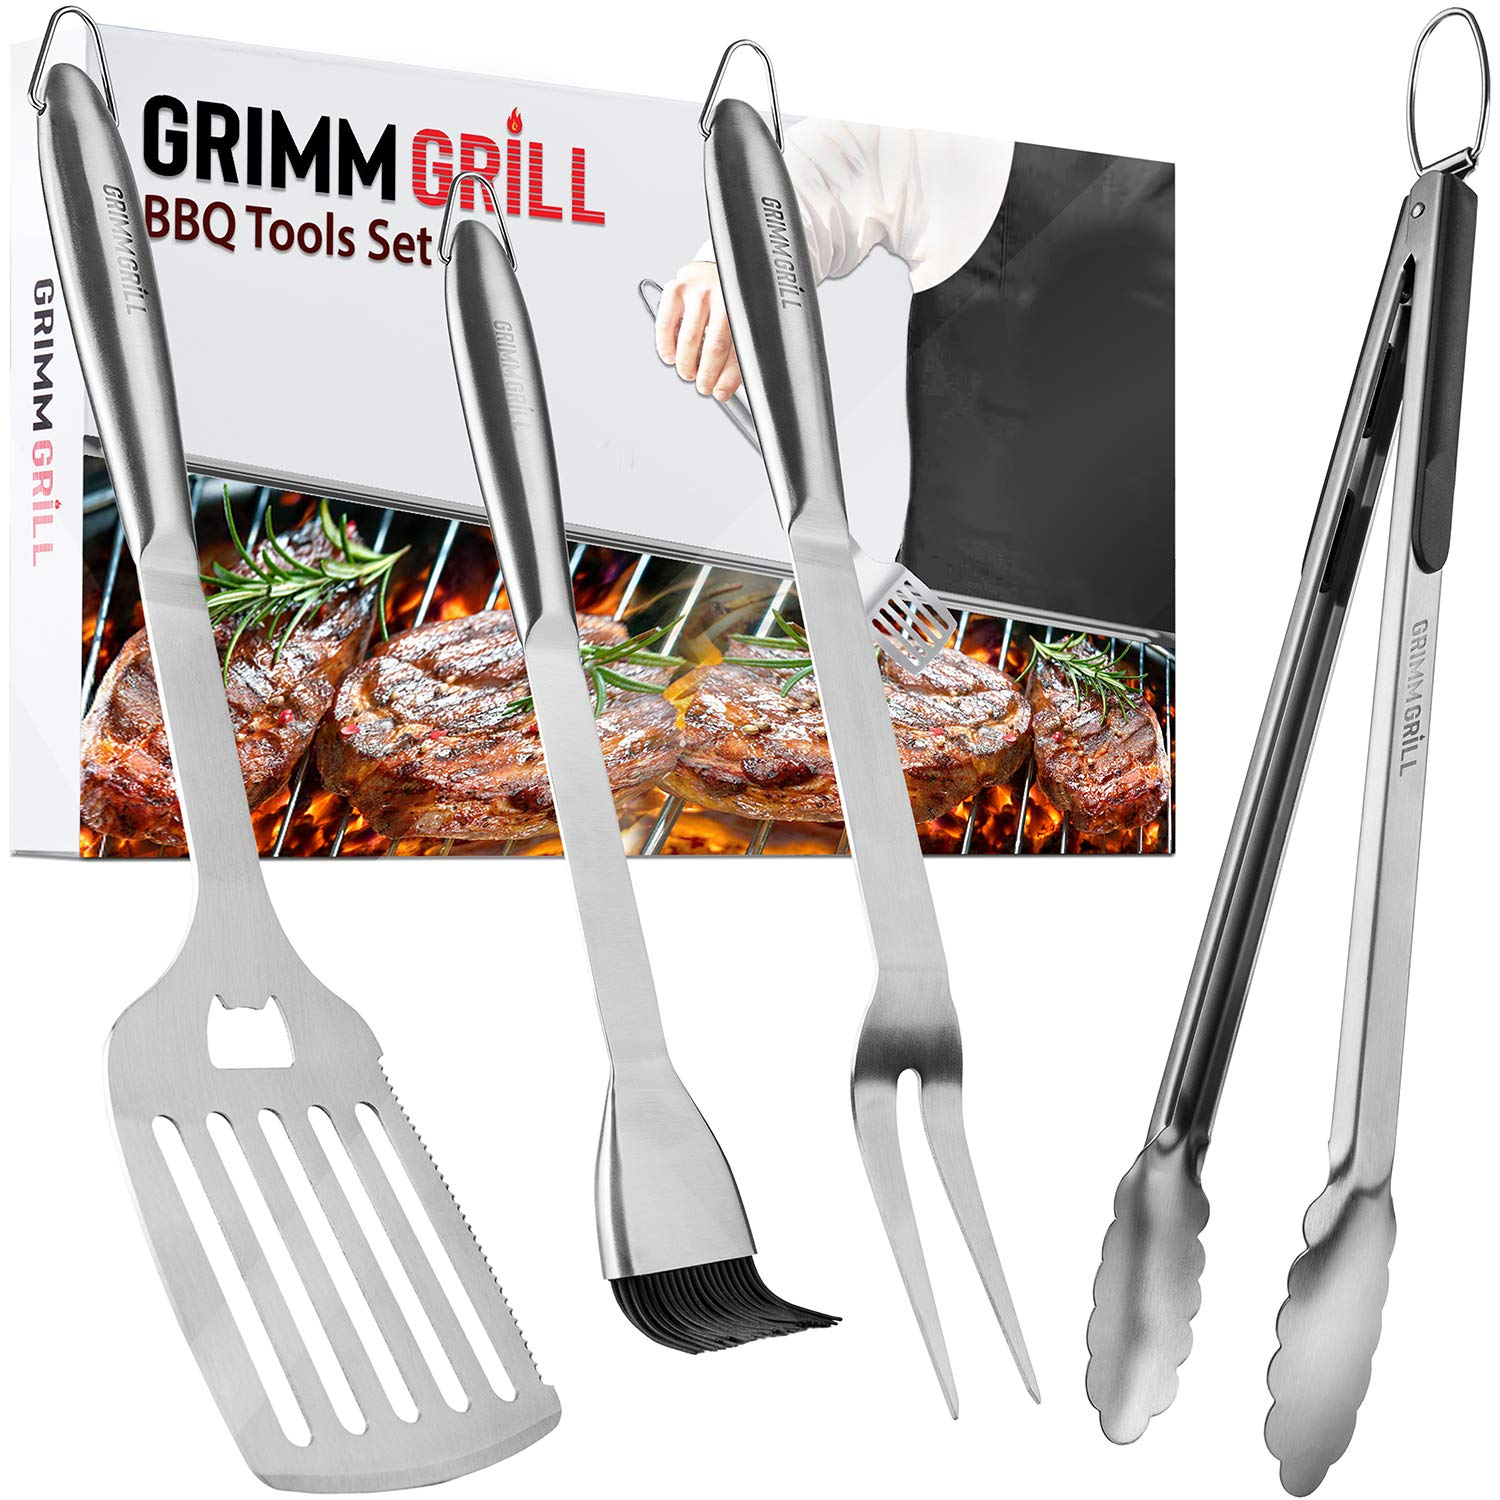 Black Leonyo BBQ Grill Tools Set Basting Brush for Men 18-inch Extra-Long Barbecue Grilling Utensils Set Tong Extra-Thick Stainless Steel Grill Spatula Fork Dishwasher Safe Gift Box Package